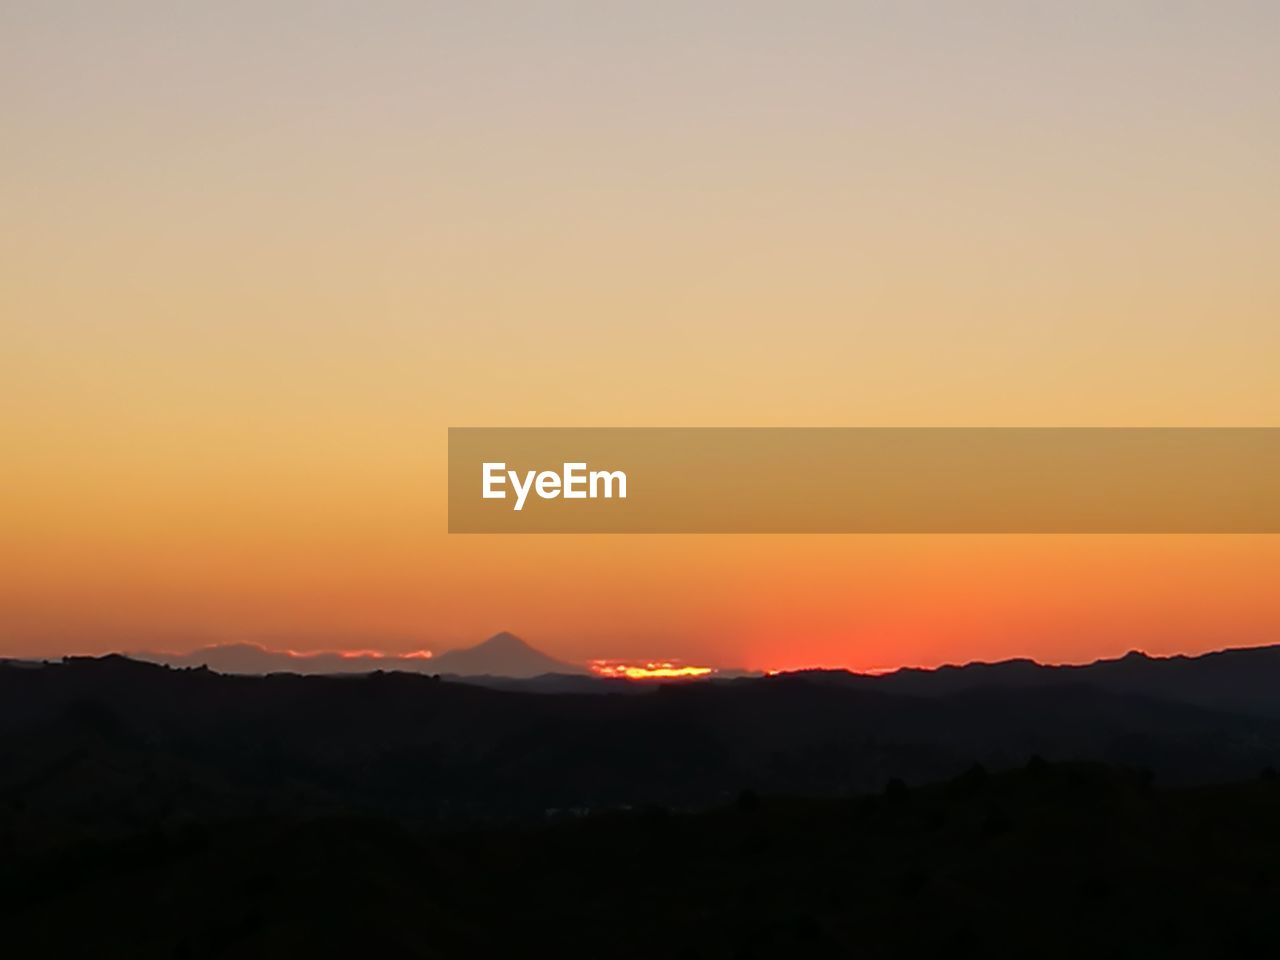 sunset, sky, beauty in nature, orange color, scenics - nature, silhouette, mountain, tranquil scene, tranquility, idyllic, copy space, non-urban scene, environment, no people, nature, landscape, sun, mountain range, clear sky, remote, outdoors, romantic sky, mountain peak